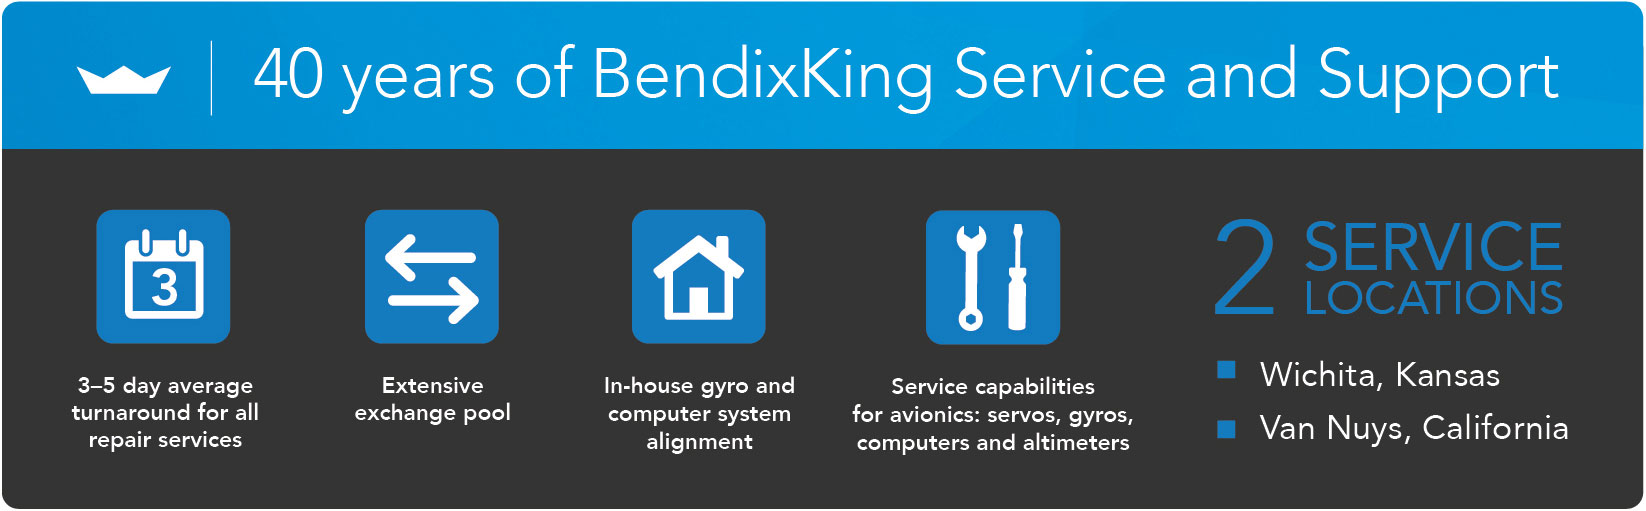 40 Years of BendixKing Service and Support